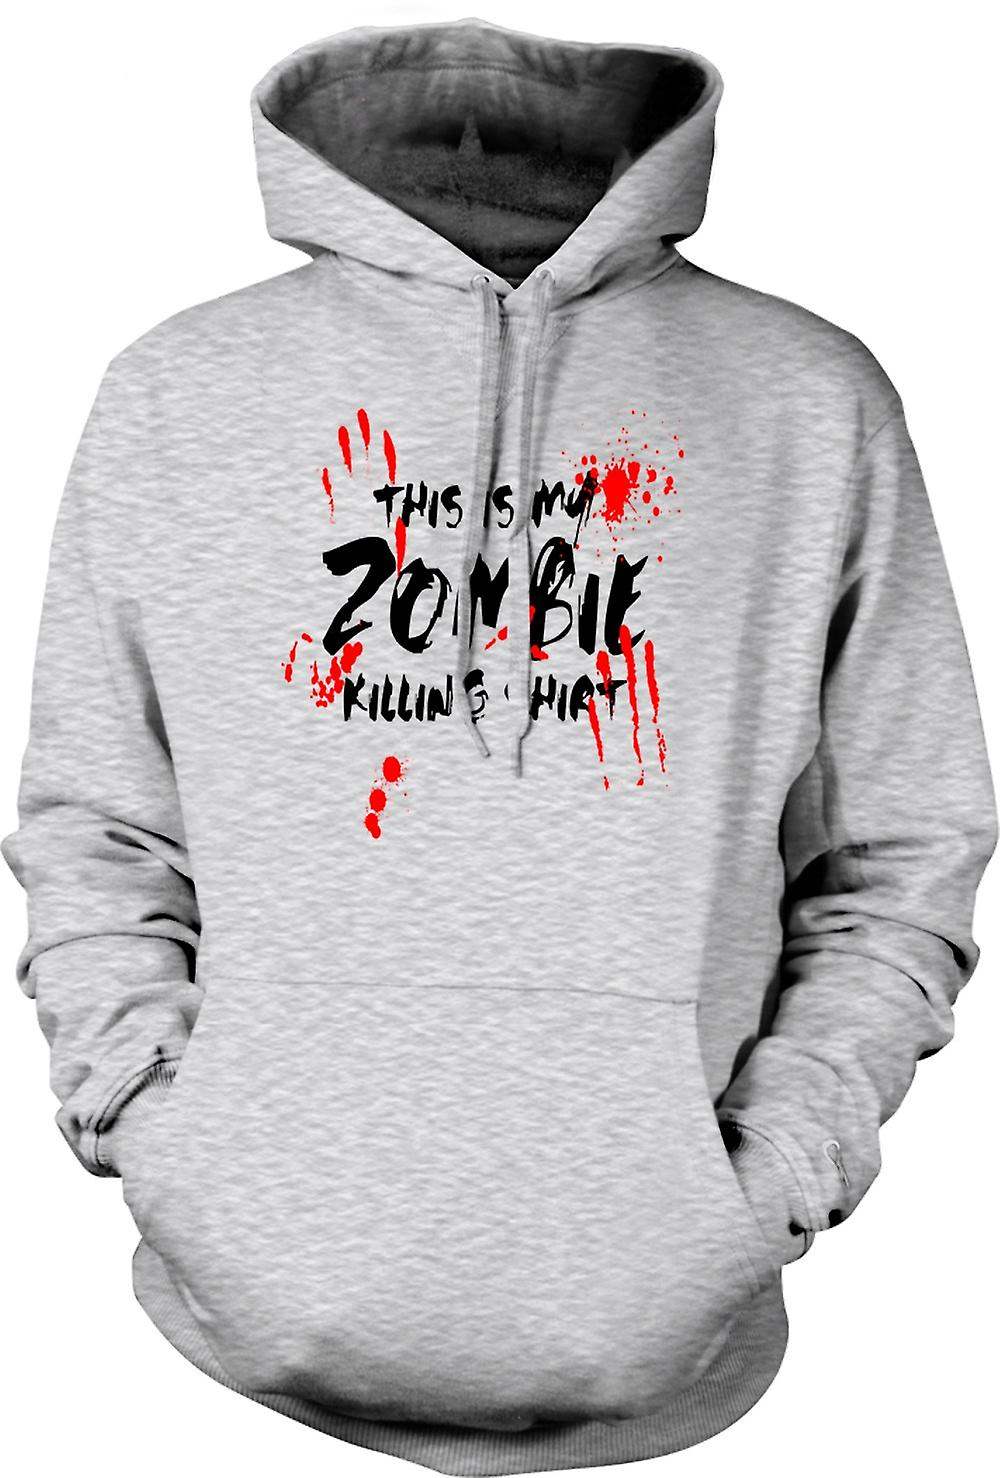 Mens Hoodie - This Is My Zombie massacre - Drôle